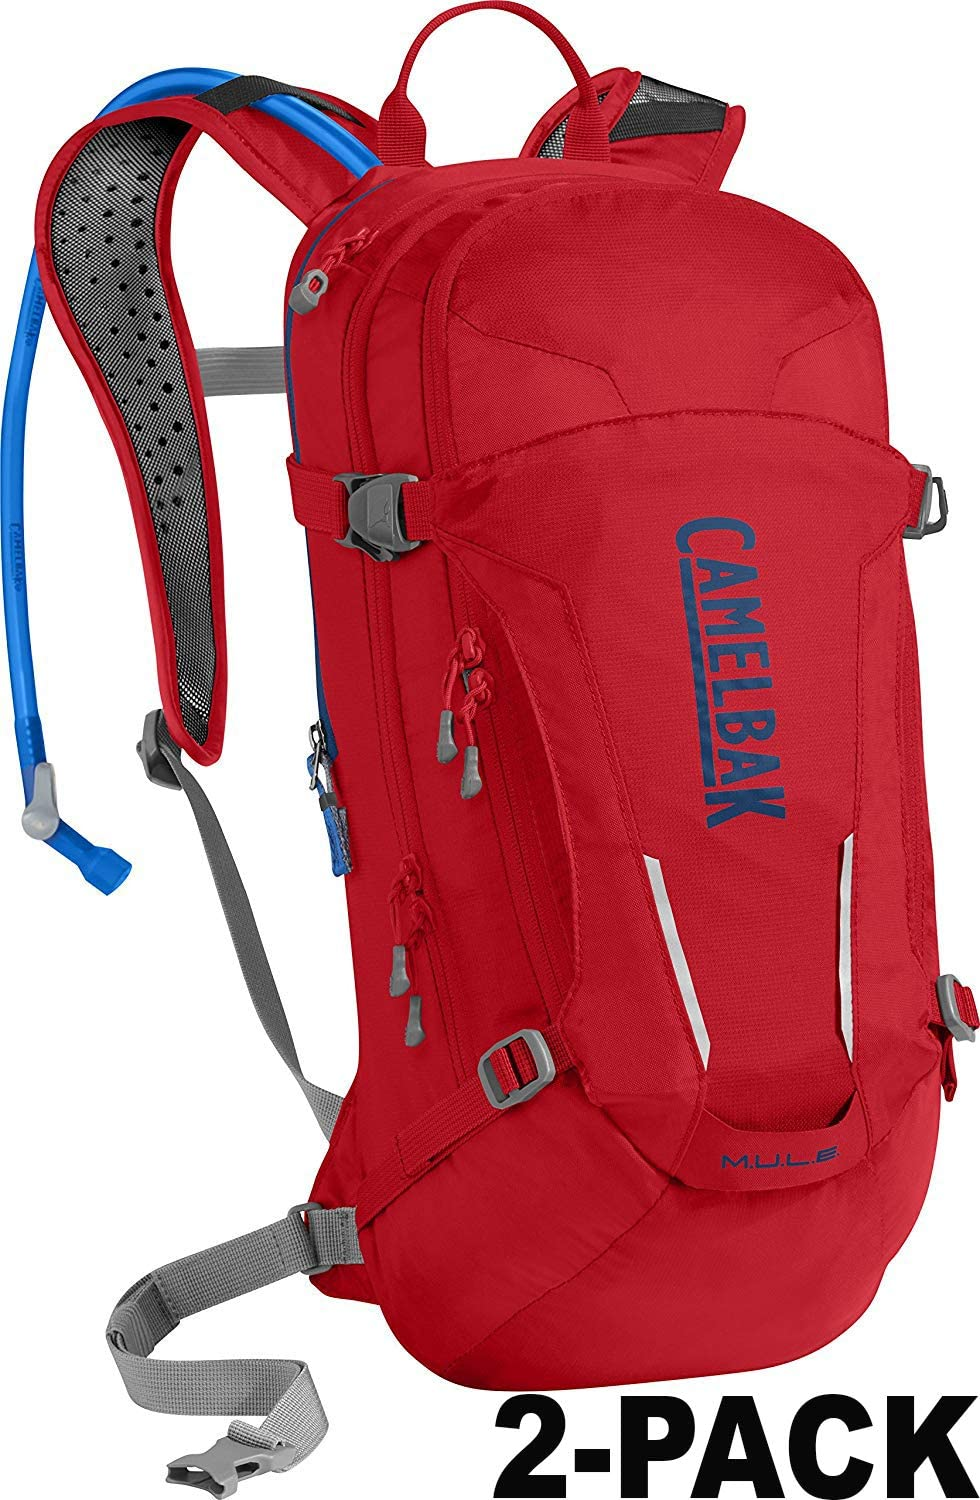 M.U.L.E. Hydration Pack 100 oz